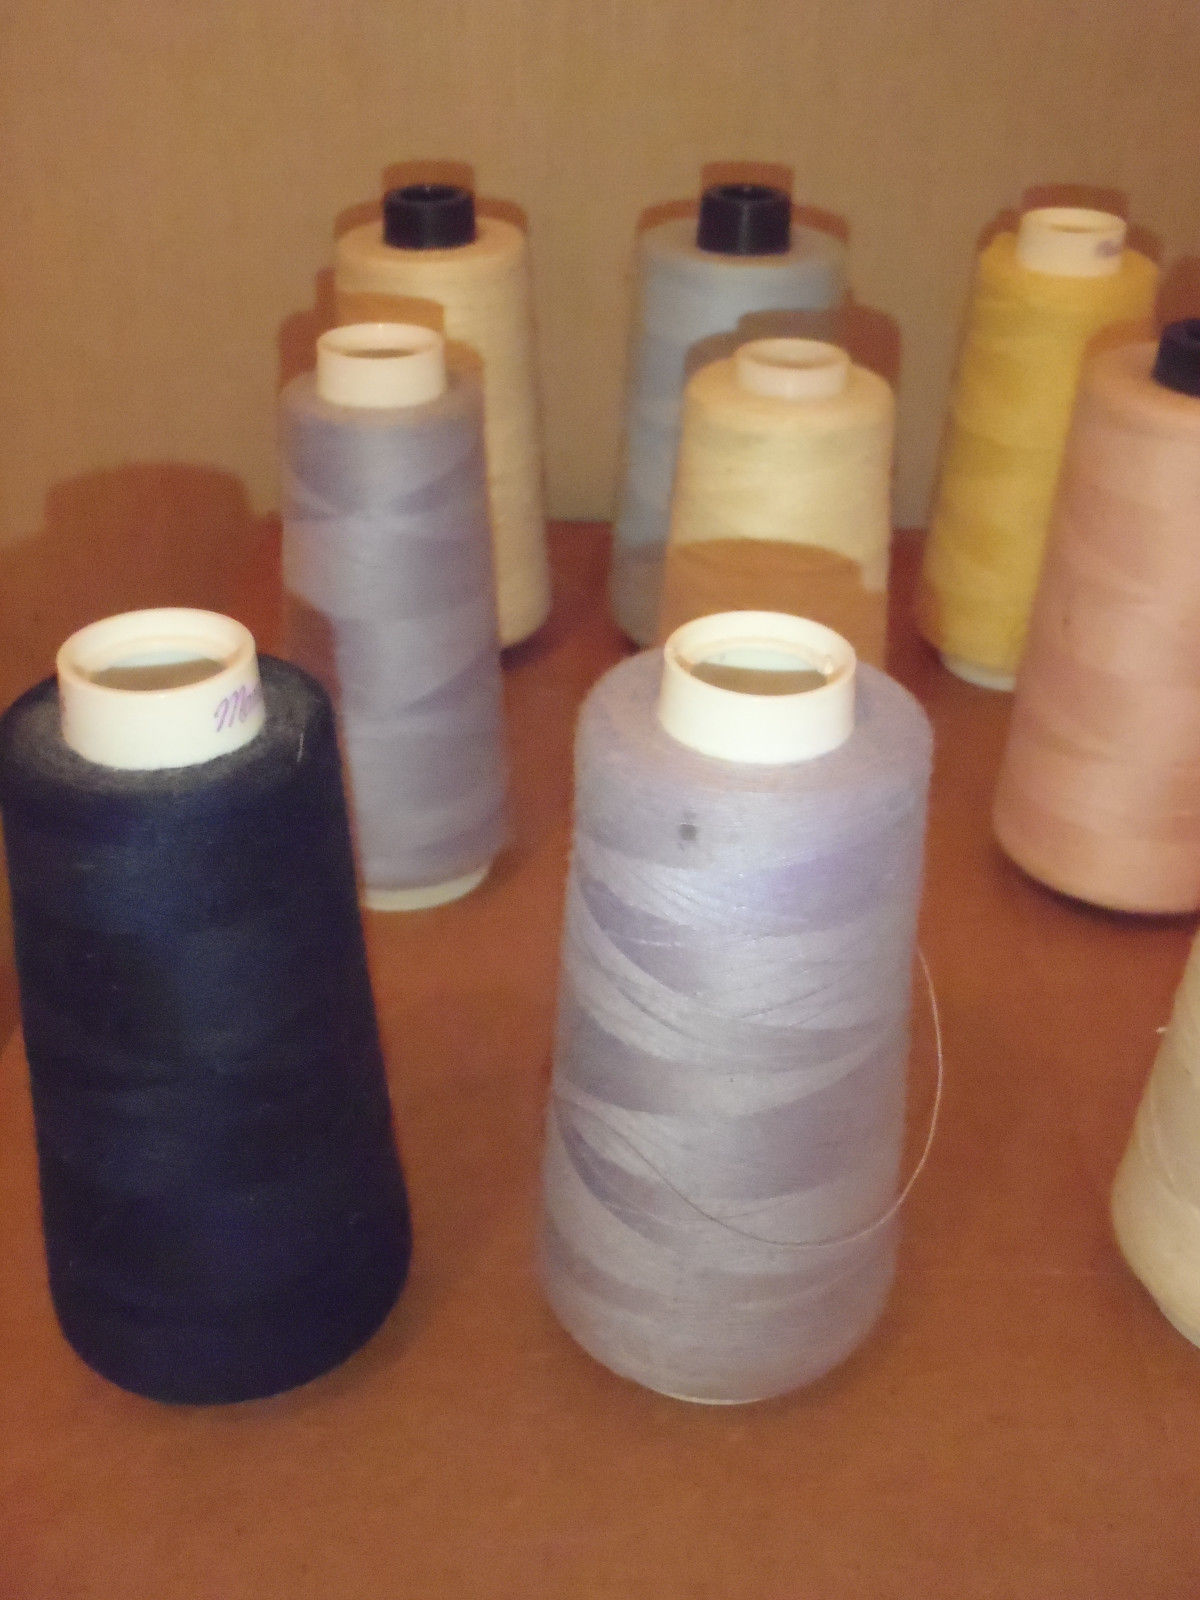 LOT OF 19 MAXI LOCK SERGER THREAD SPOOLS